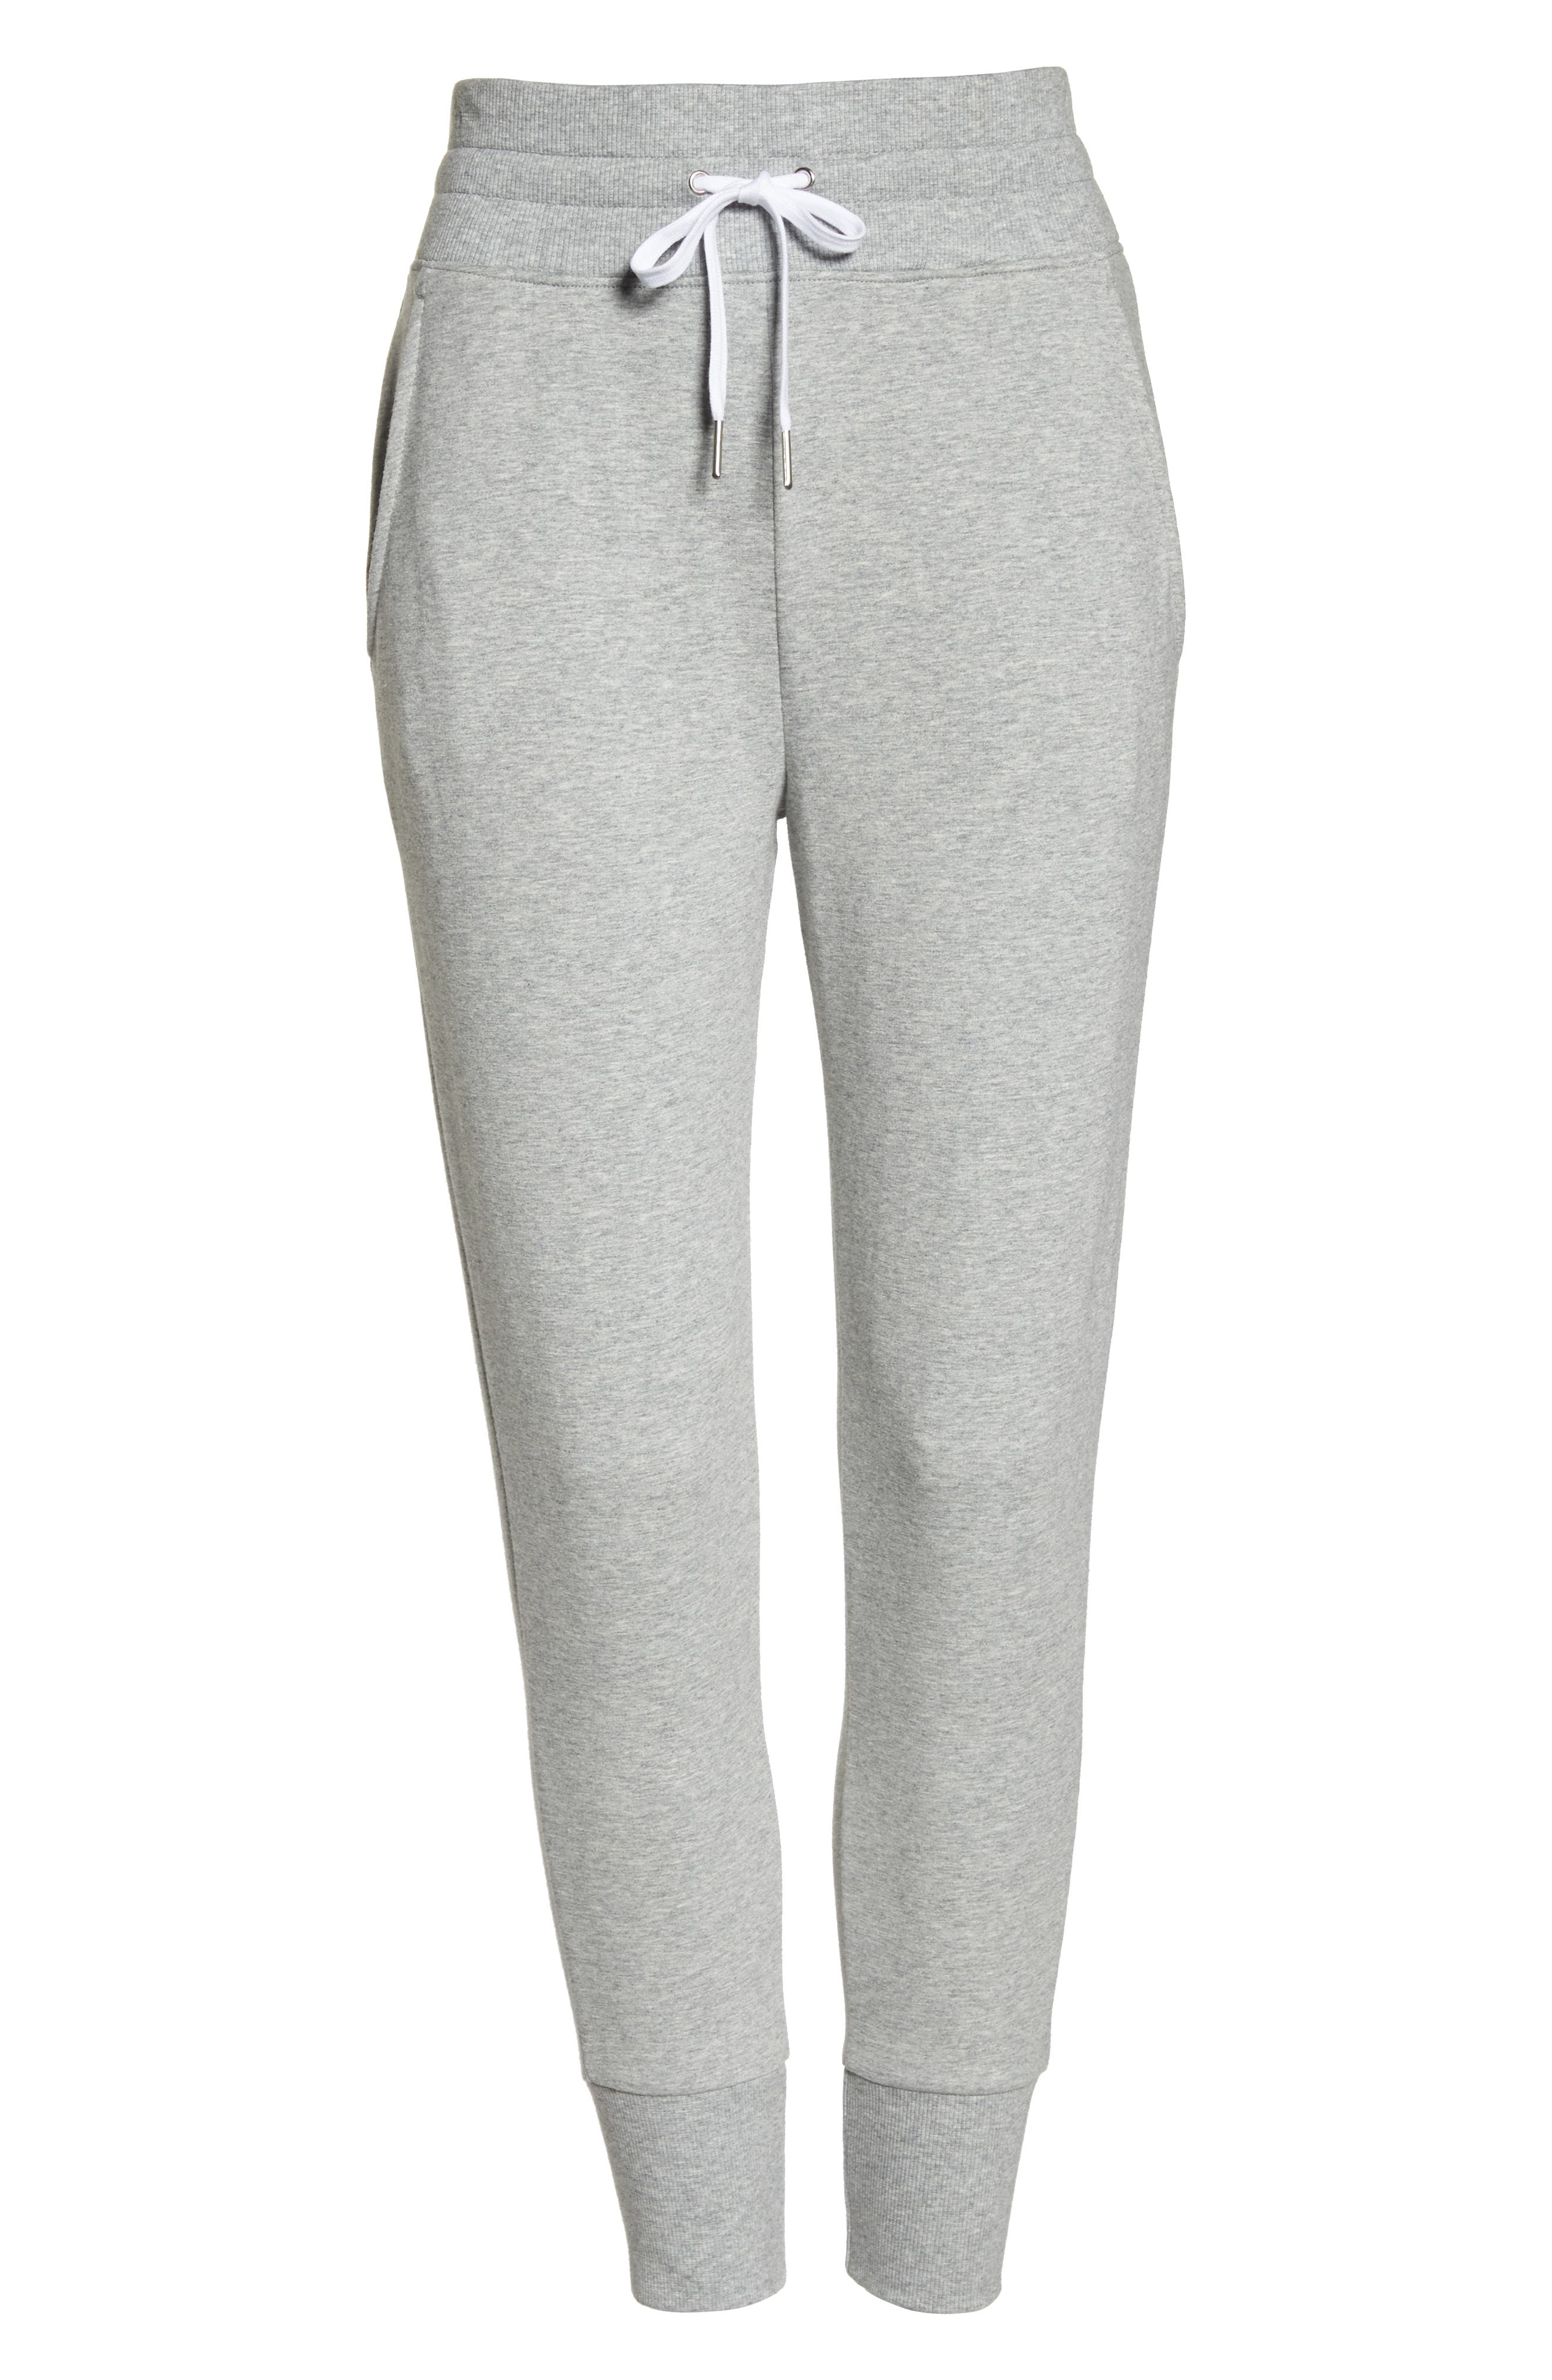 Repeat High Waist Crop Jogger Pants,                             Alternate thumbnail 7, color,                             GREY QUIET HEATHER